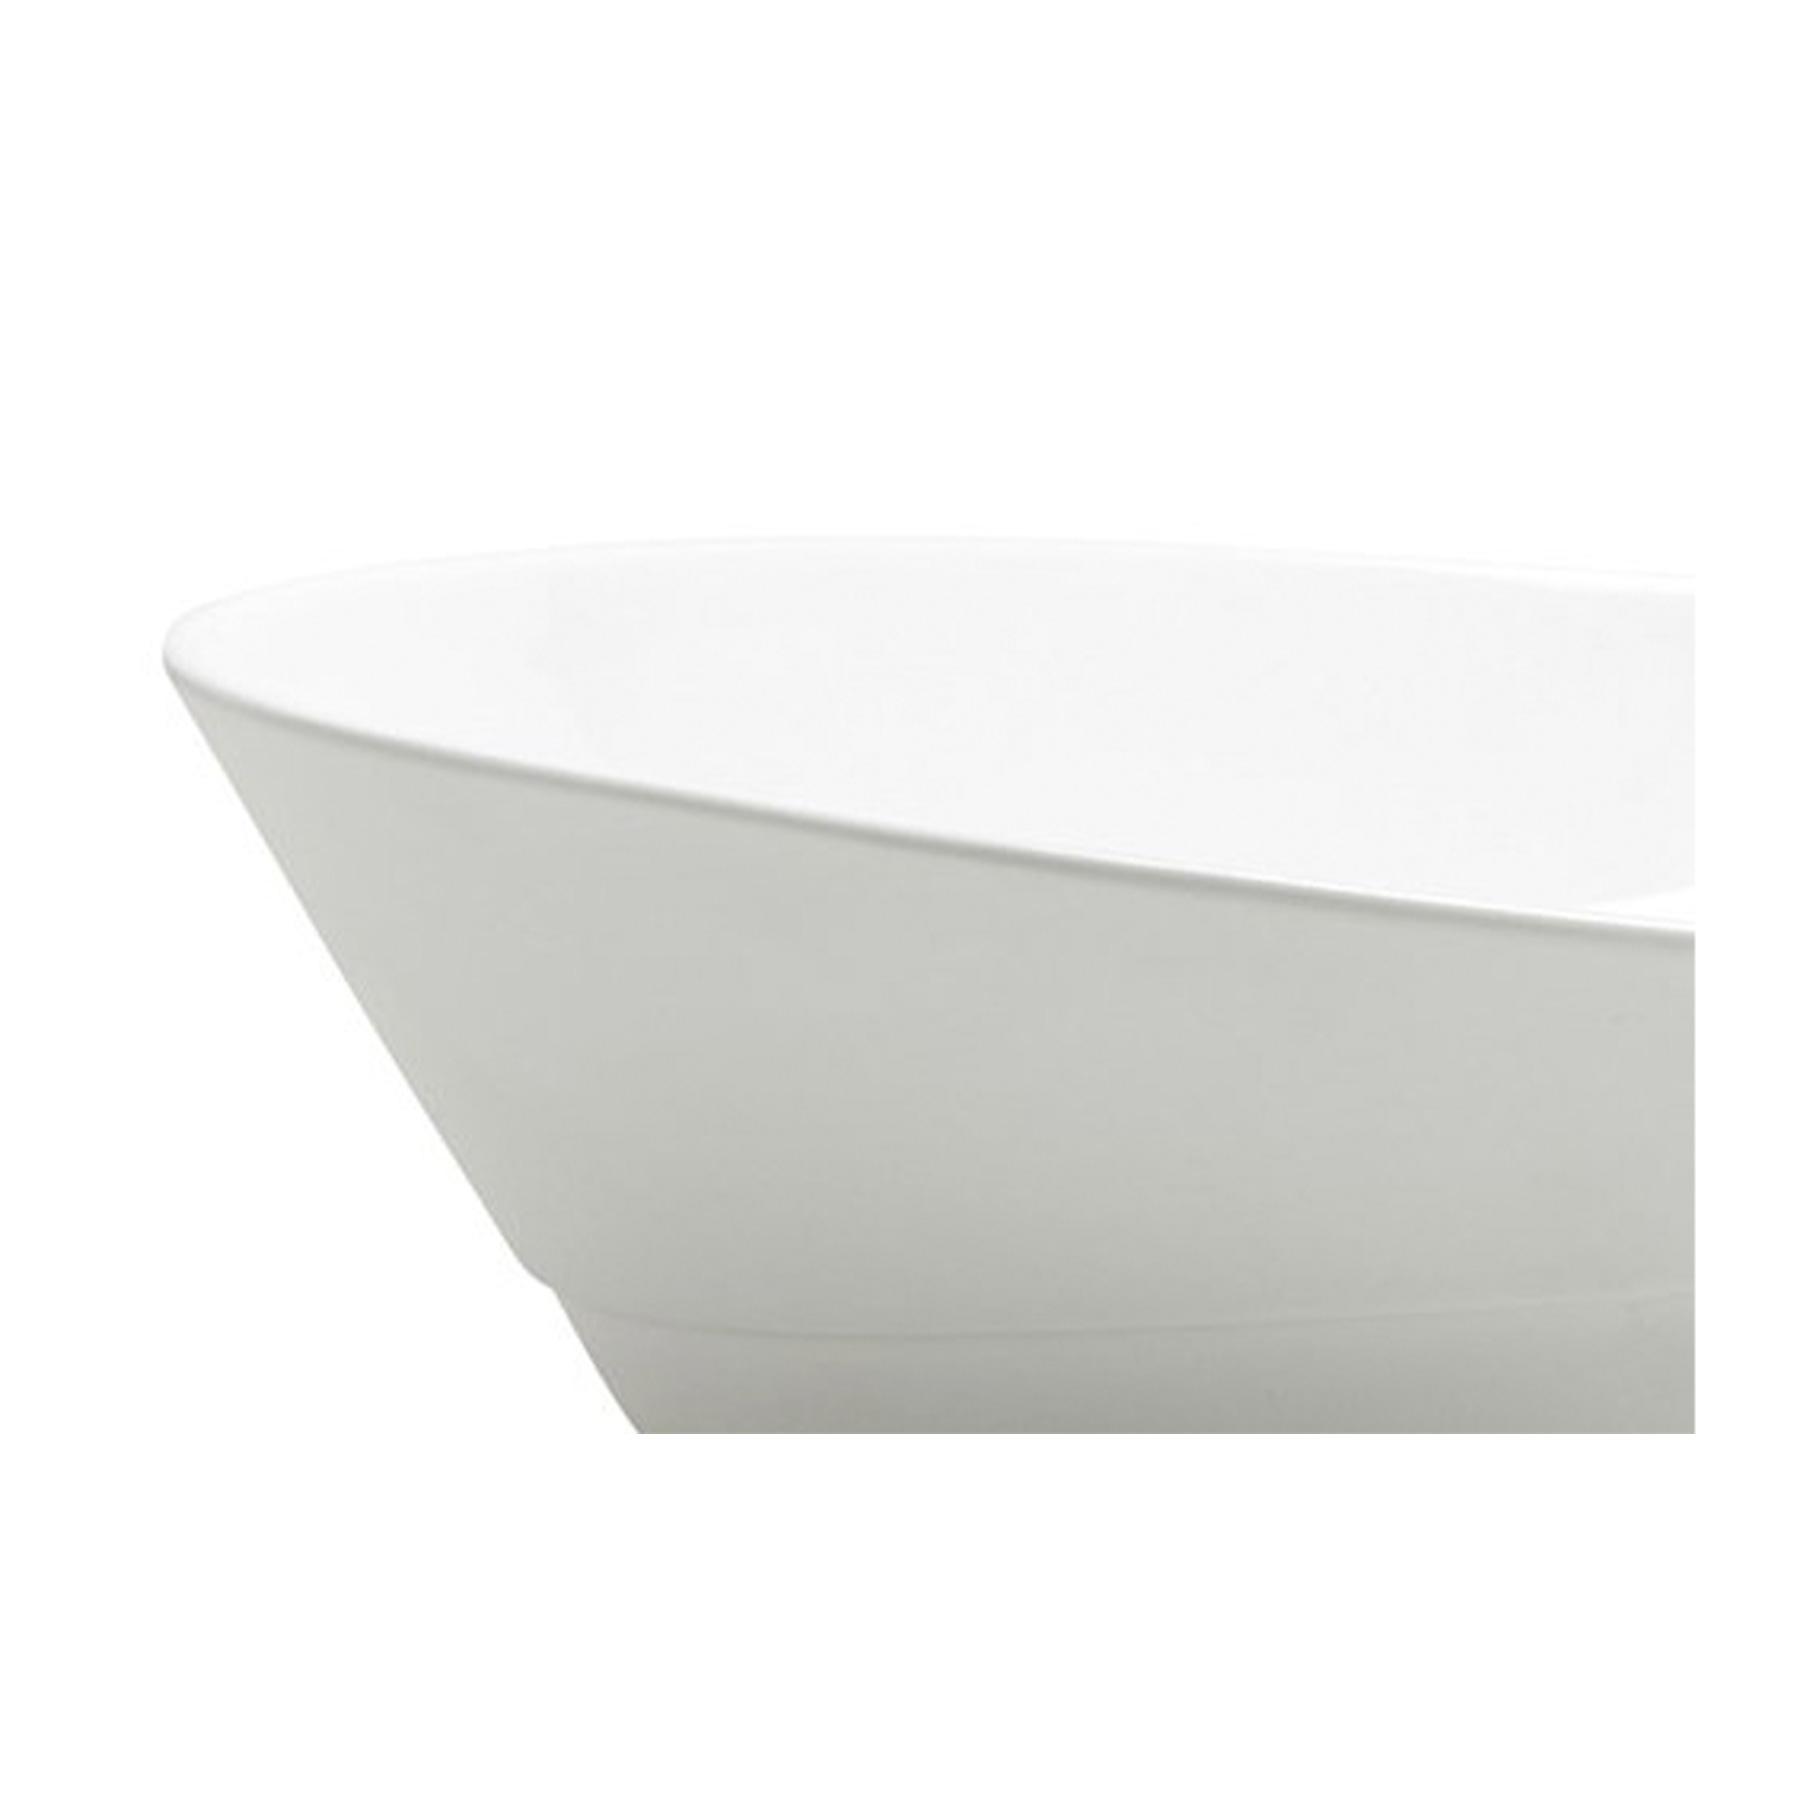 Flare Large Shallow Bowl - <p>Russell Pinch and Oona Bannon are renowned furniture and lighting designers and have reduced the scale in which they design to create Flare.<br /> Flare is a fine bone china collection that involves generous and curvaceous forms paired with exaggerated ratios delivered via handles and spouts. The shapes offer a sculptural modernity whilst referencing classic form, and make a virtue of light and shadow. For a radical departure from their usual palette, the Festival Jug is a hand-painted prestige piece that is wild in colour and takes an arduous five and a half hours to decorate.</p>  | Matter of Stuff